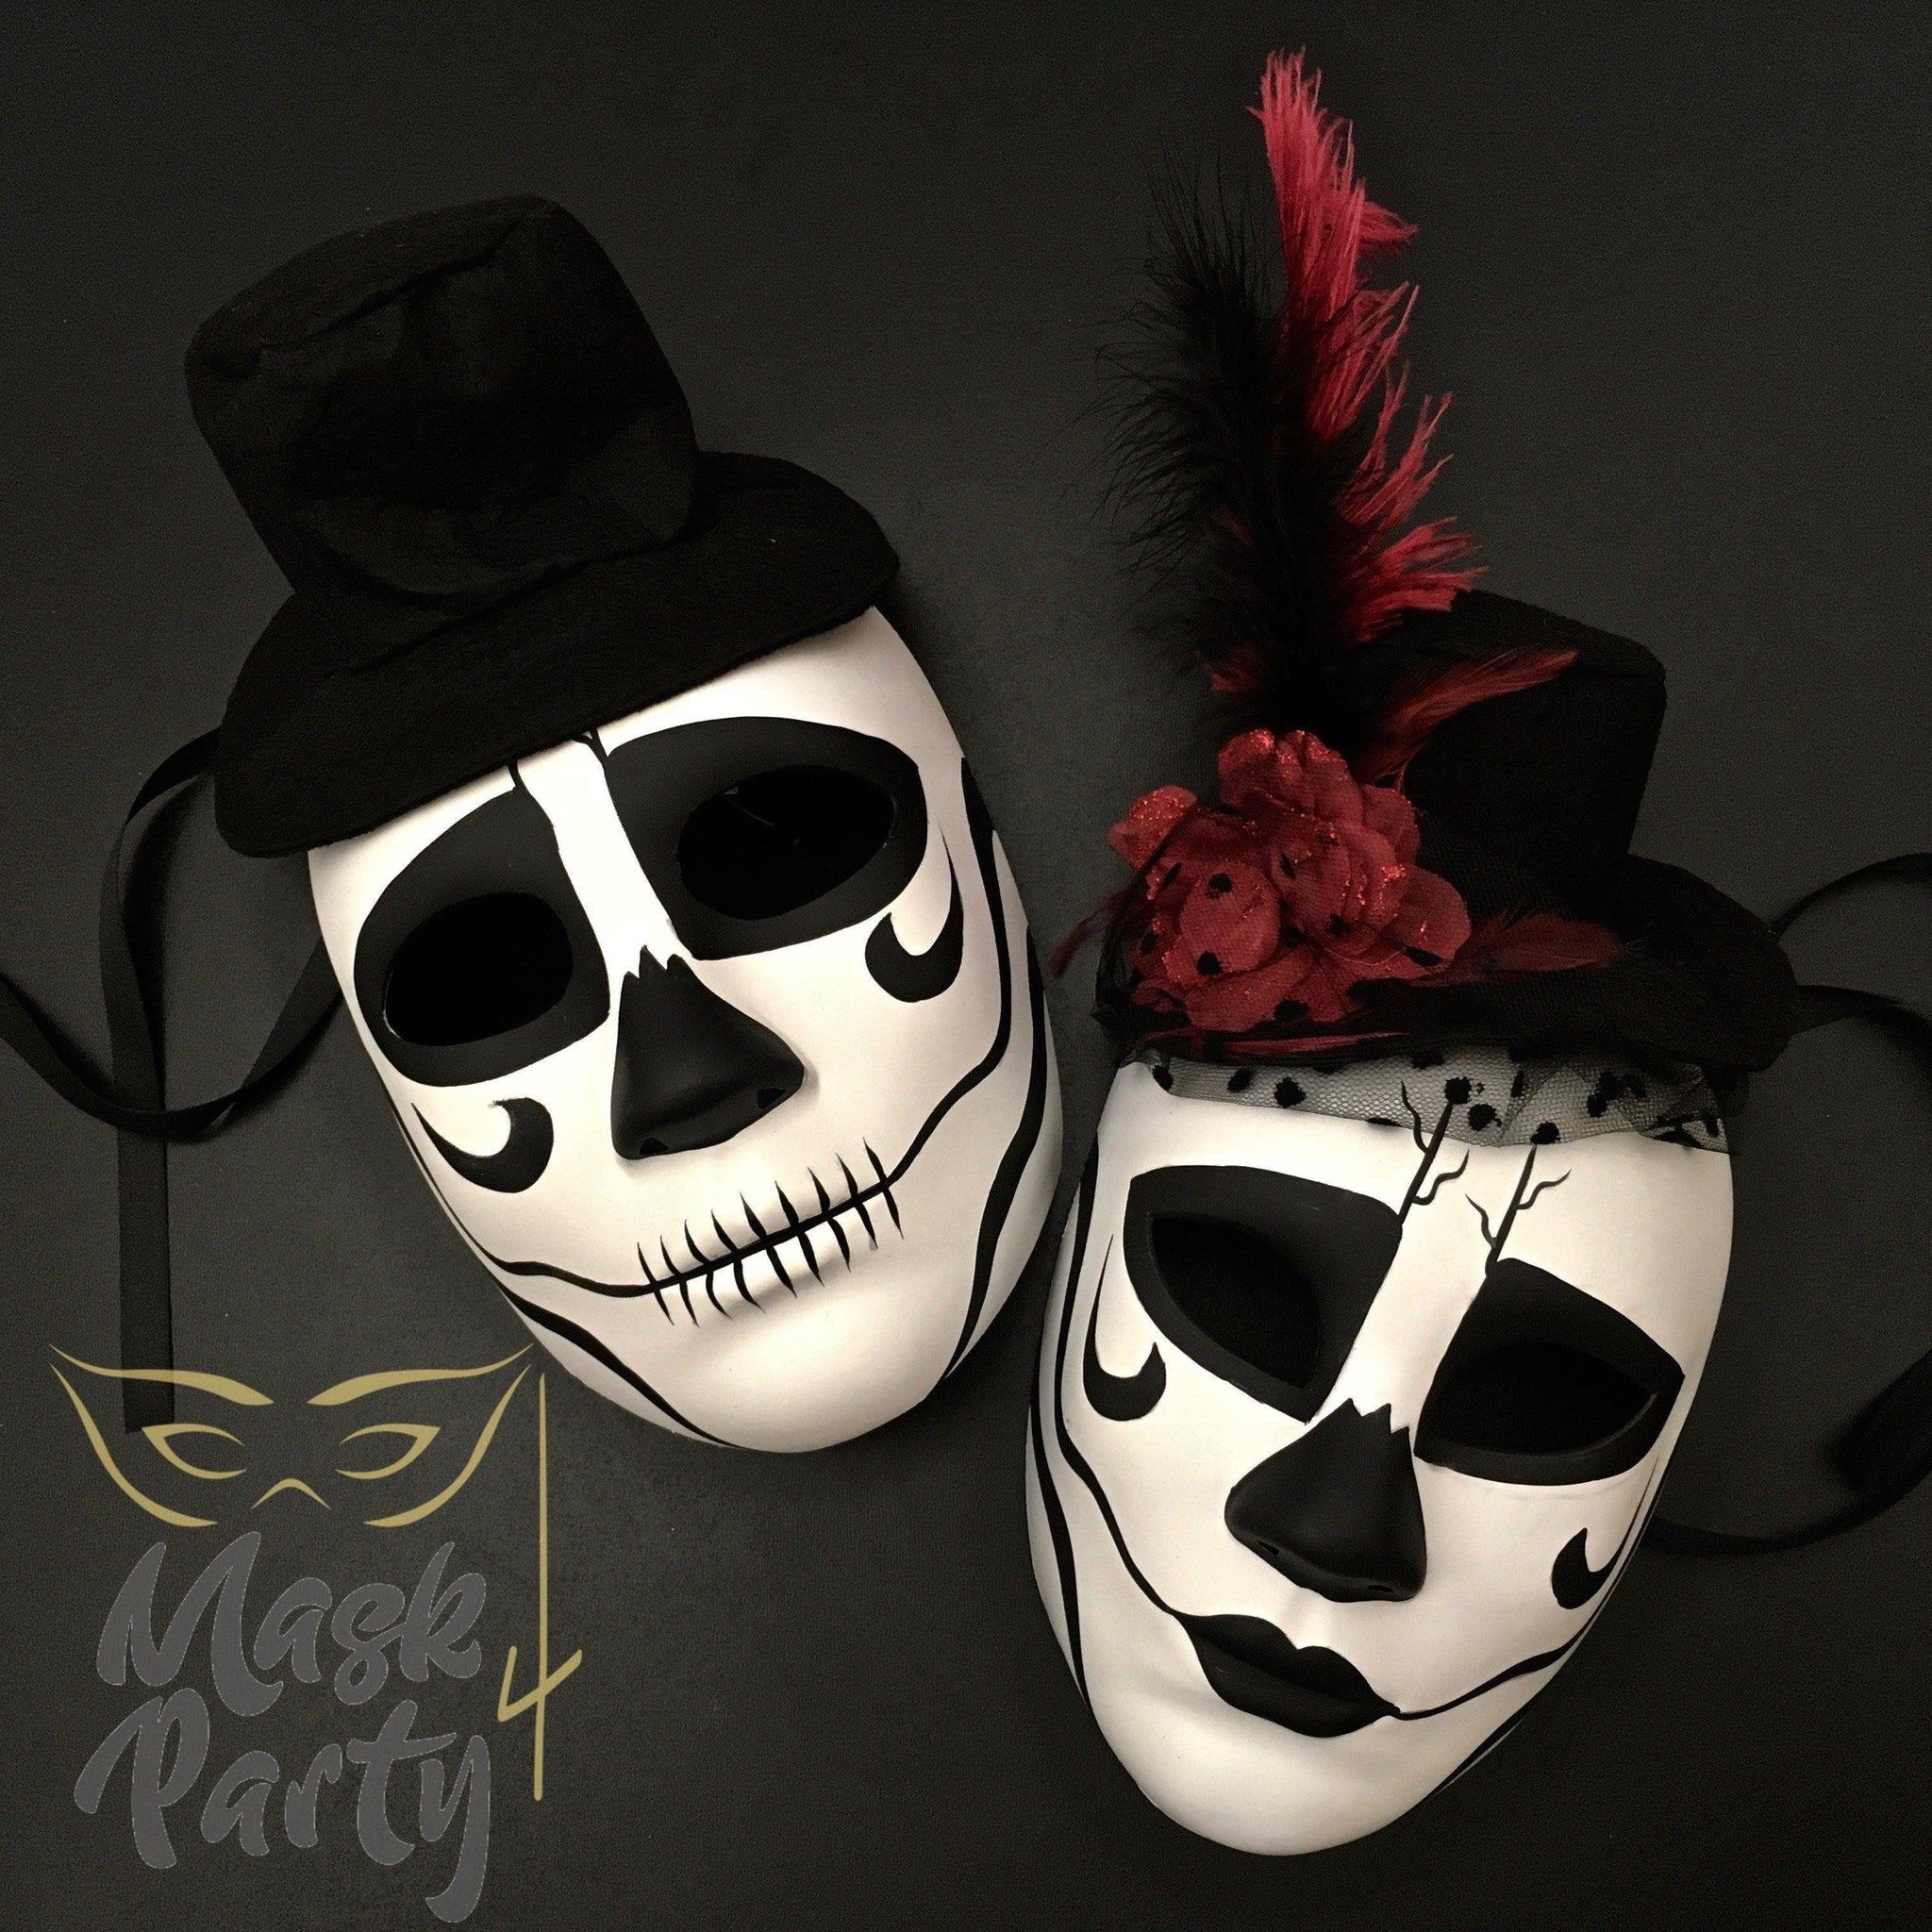 Day Of The Dead Masks - Sugar Skulls - White/Black - Mask4Party